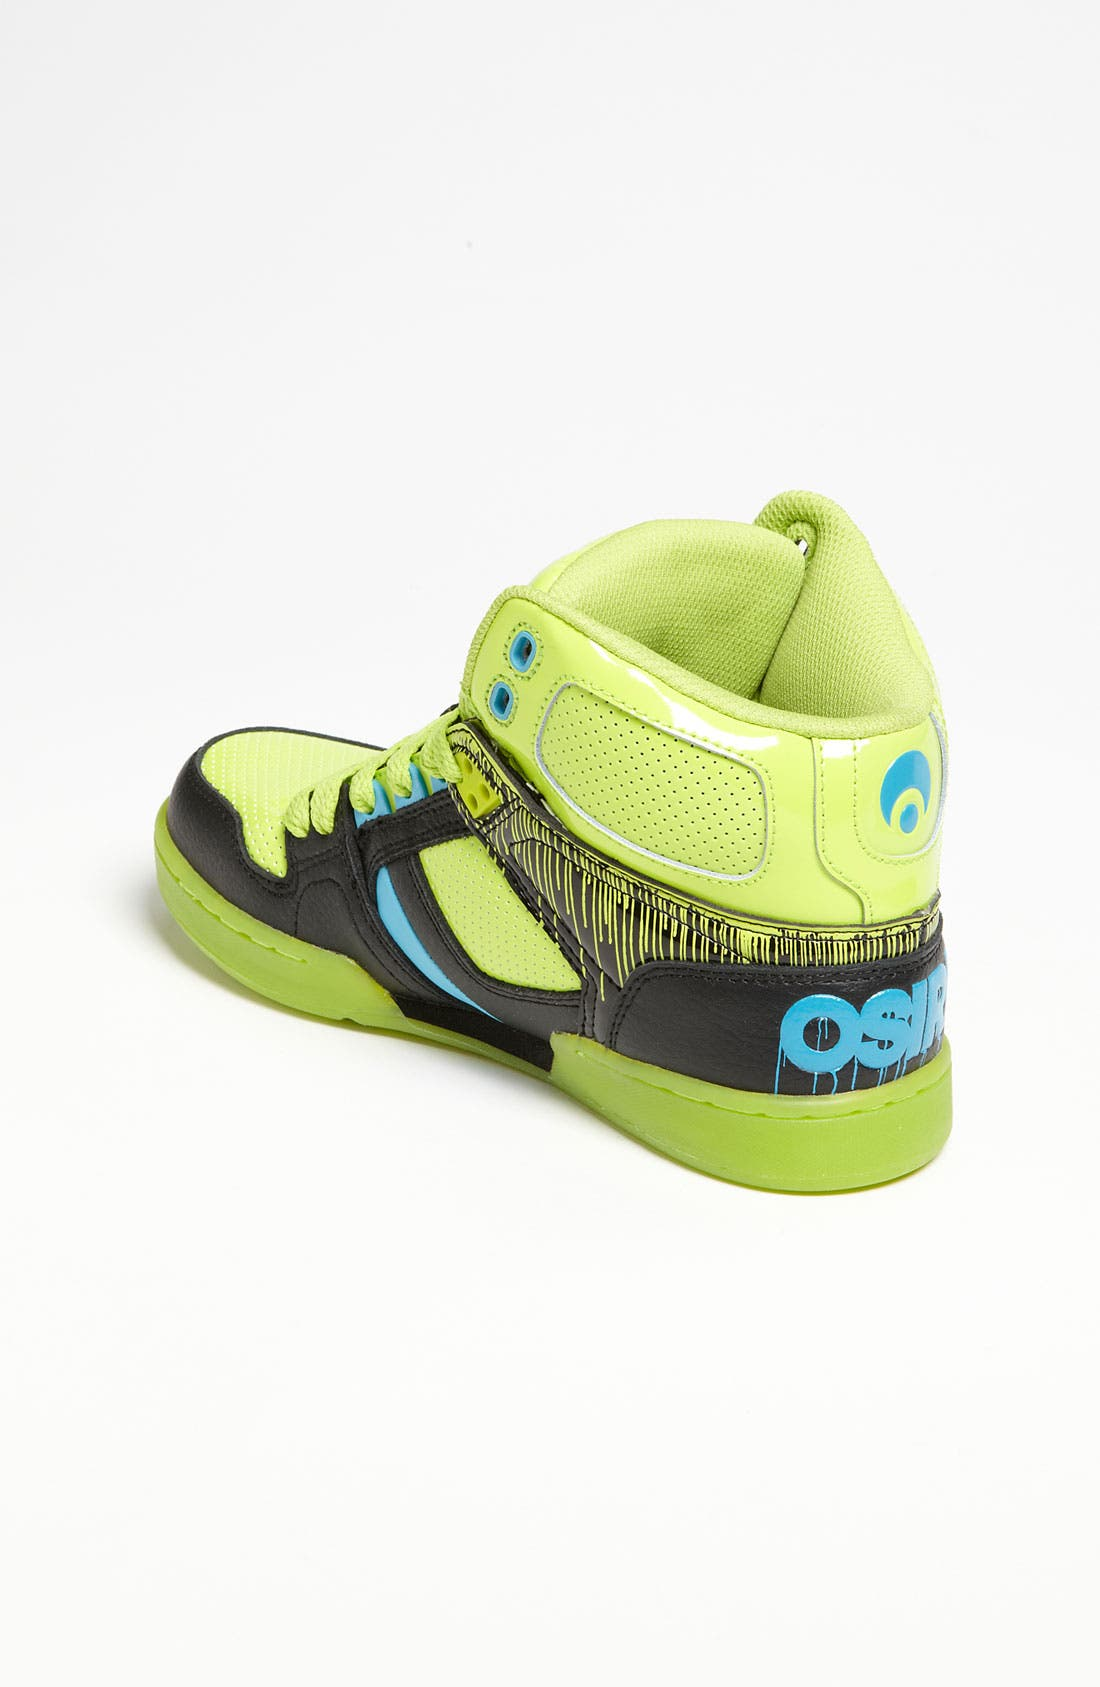 Alternate Image 2  - Osiris 'NYC 83' Skate Shoe (Toddler, Little Kid & Big Kid)